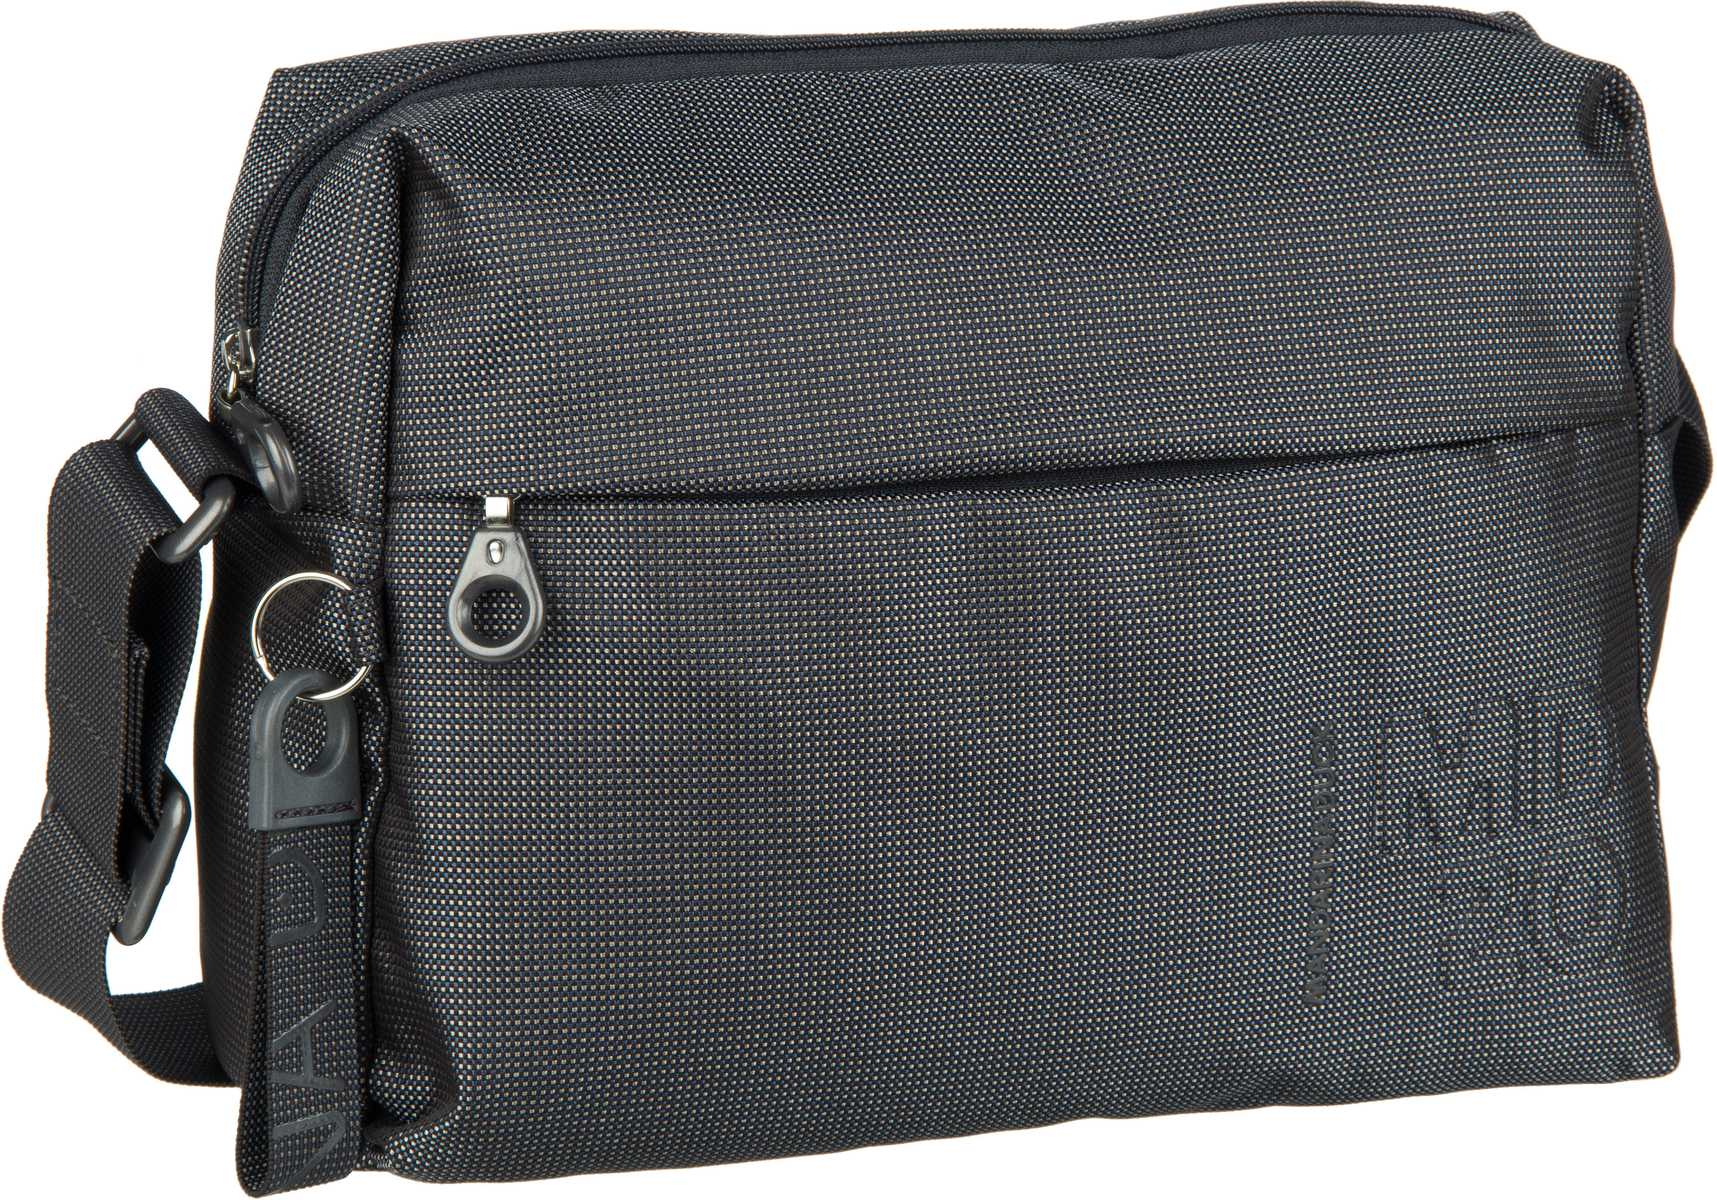 Umhängetasche MD20 Crossover Bag QMTV8 Steel